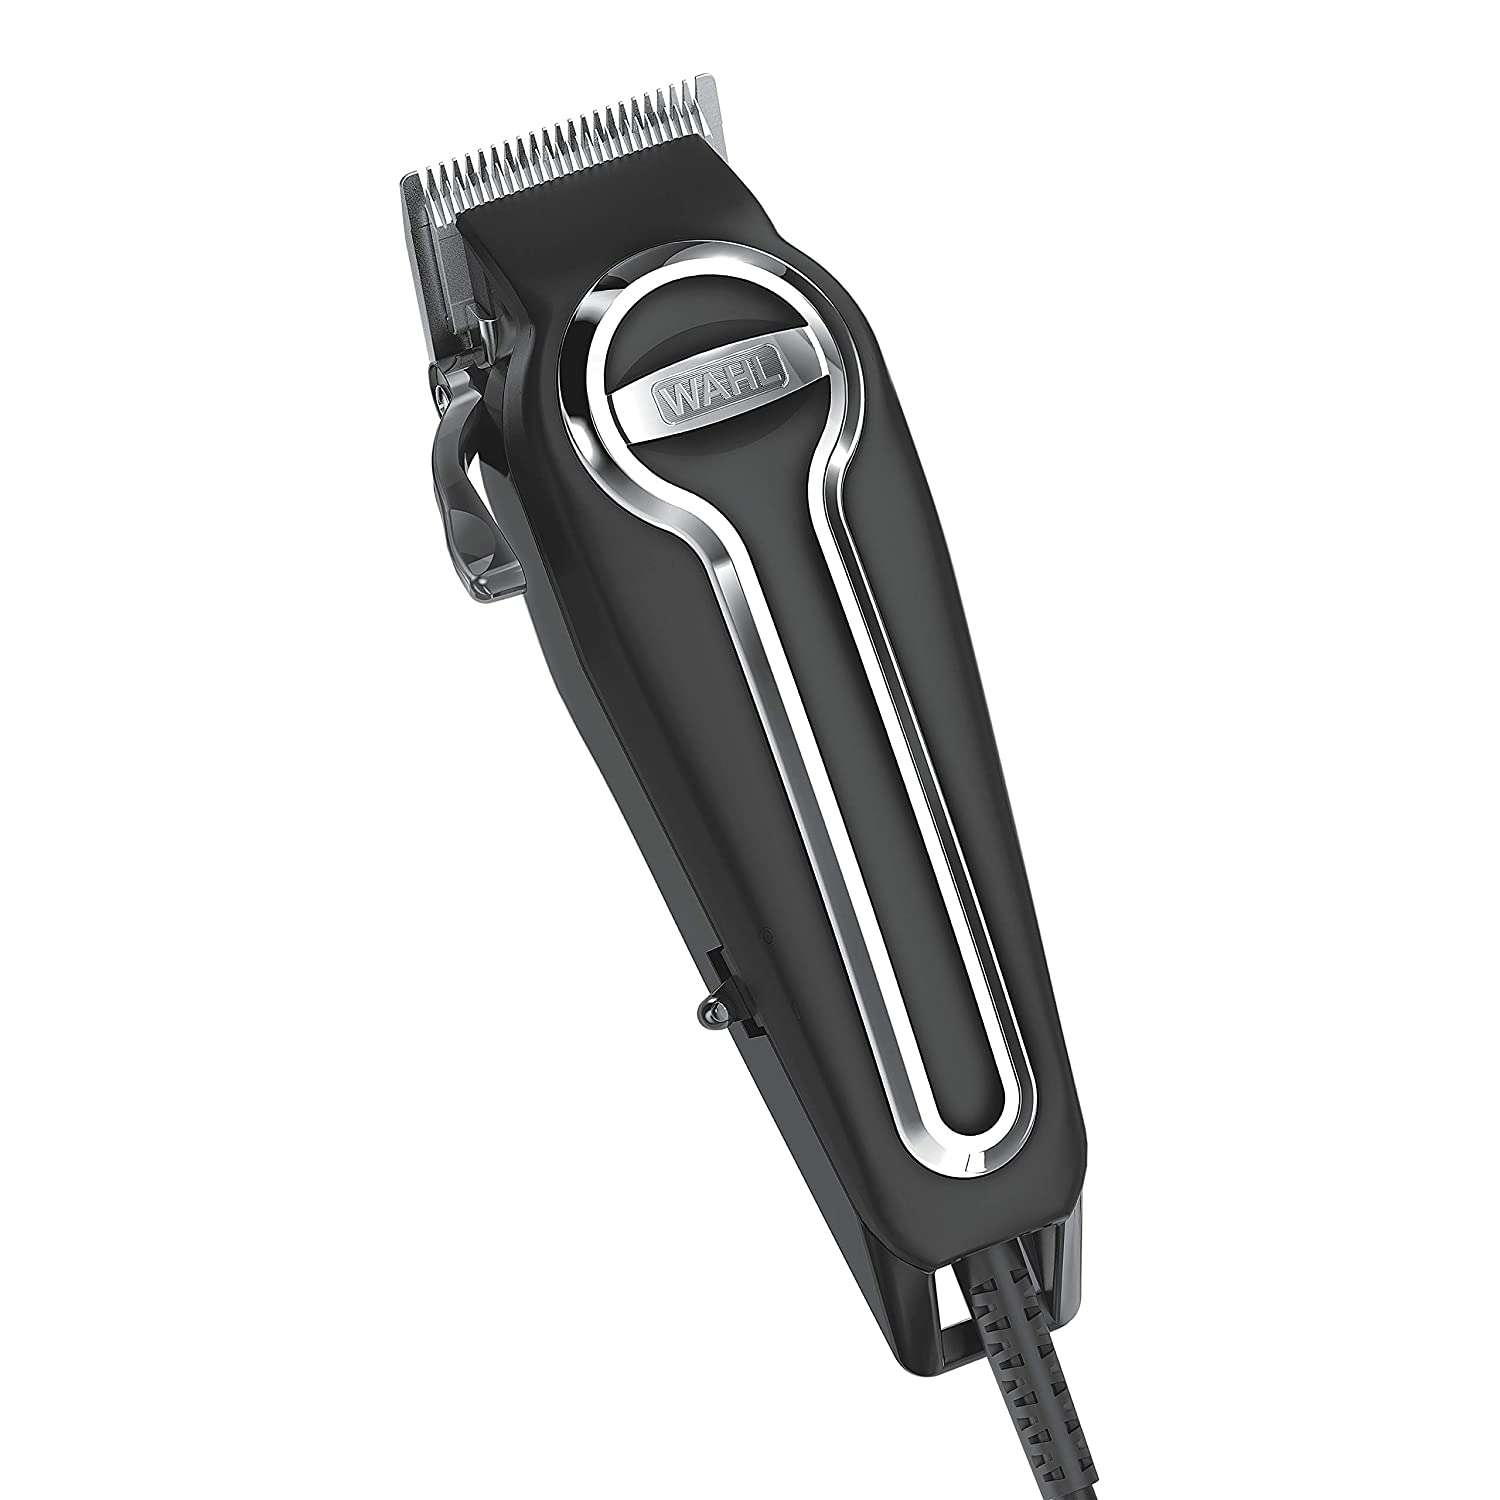 Wahl Clipper Elite Pro High-Performance Home Haircut Grooming Kit for Men Electric Hair Clipper Trimmer Model 79602